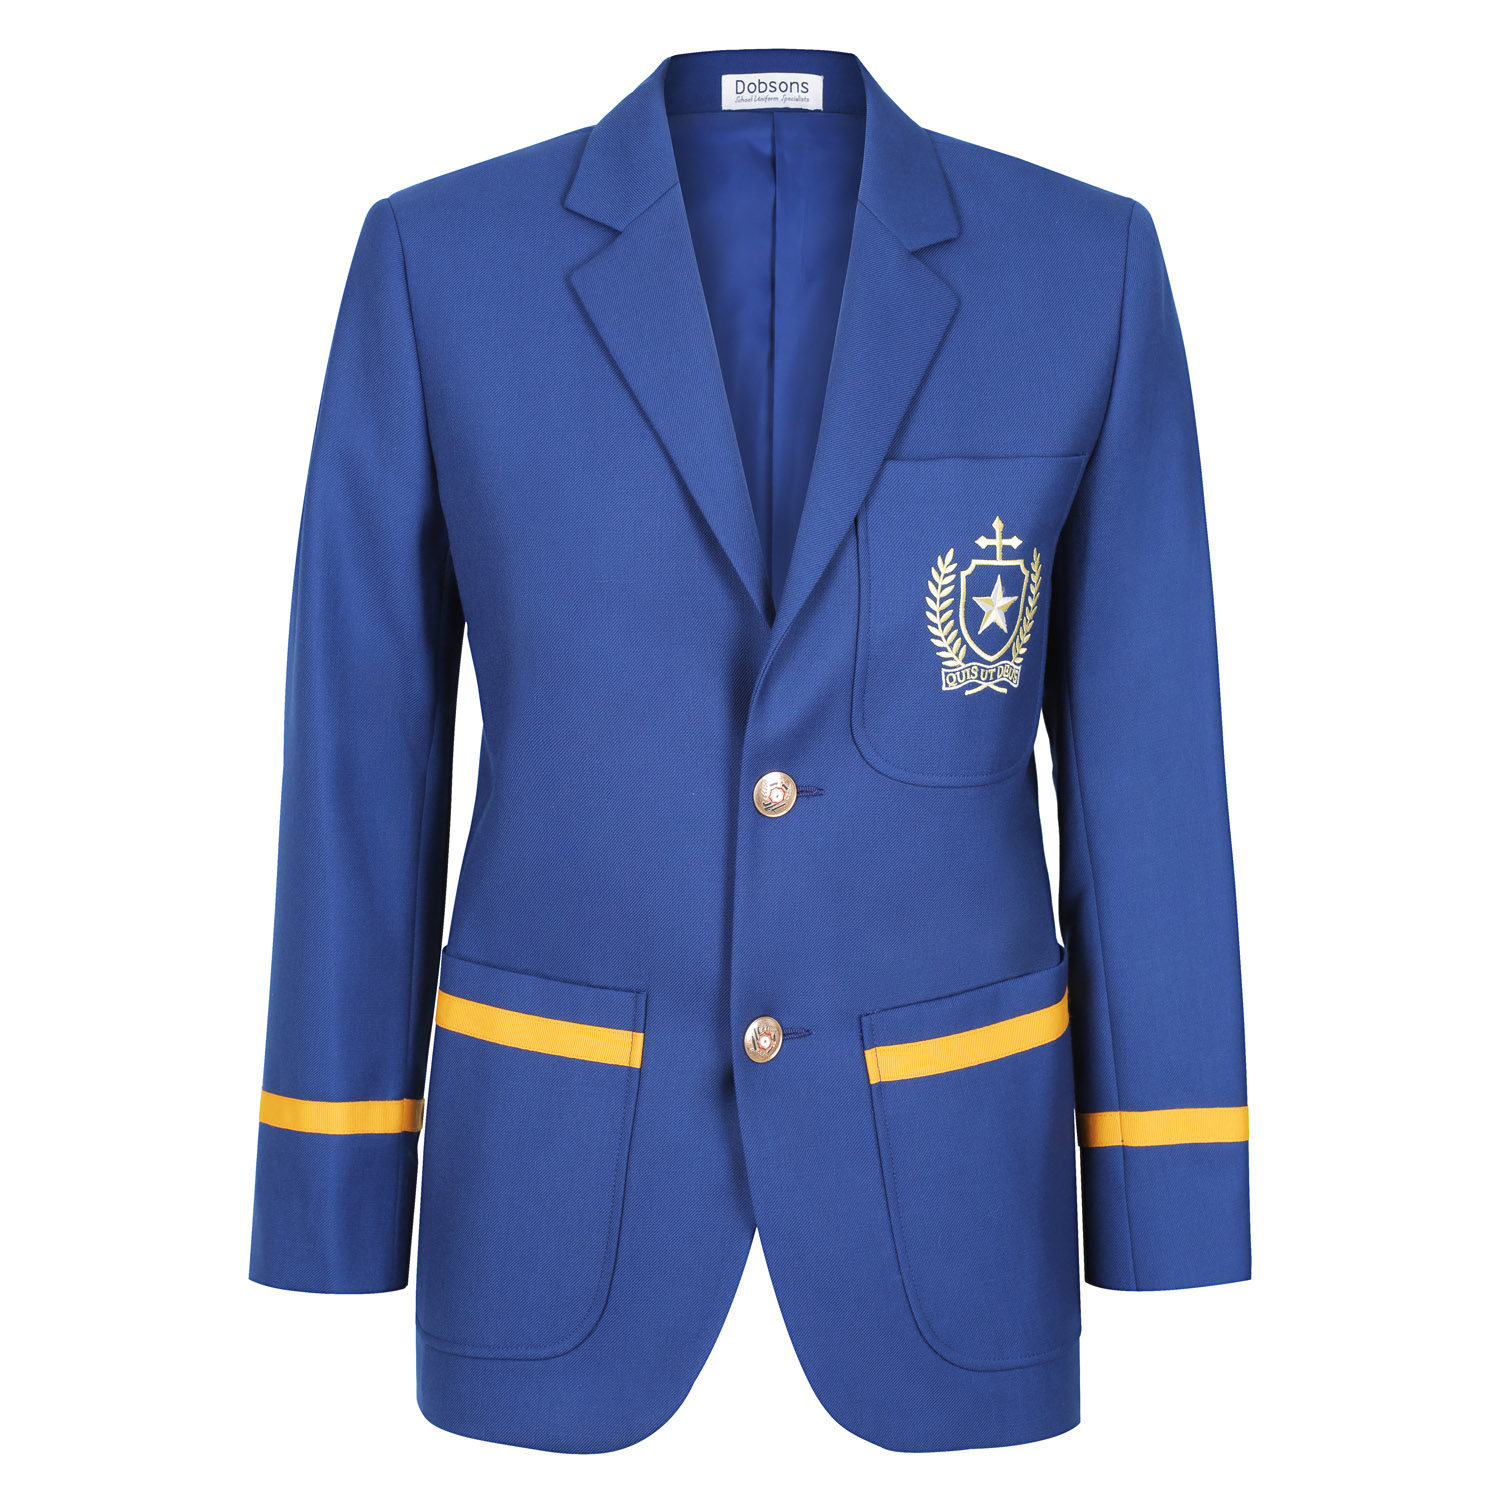 Wholesale School Uniform Suppliers Australia